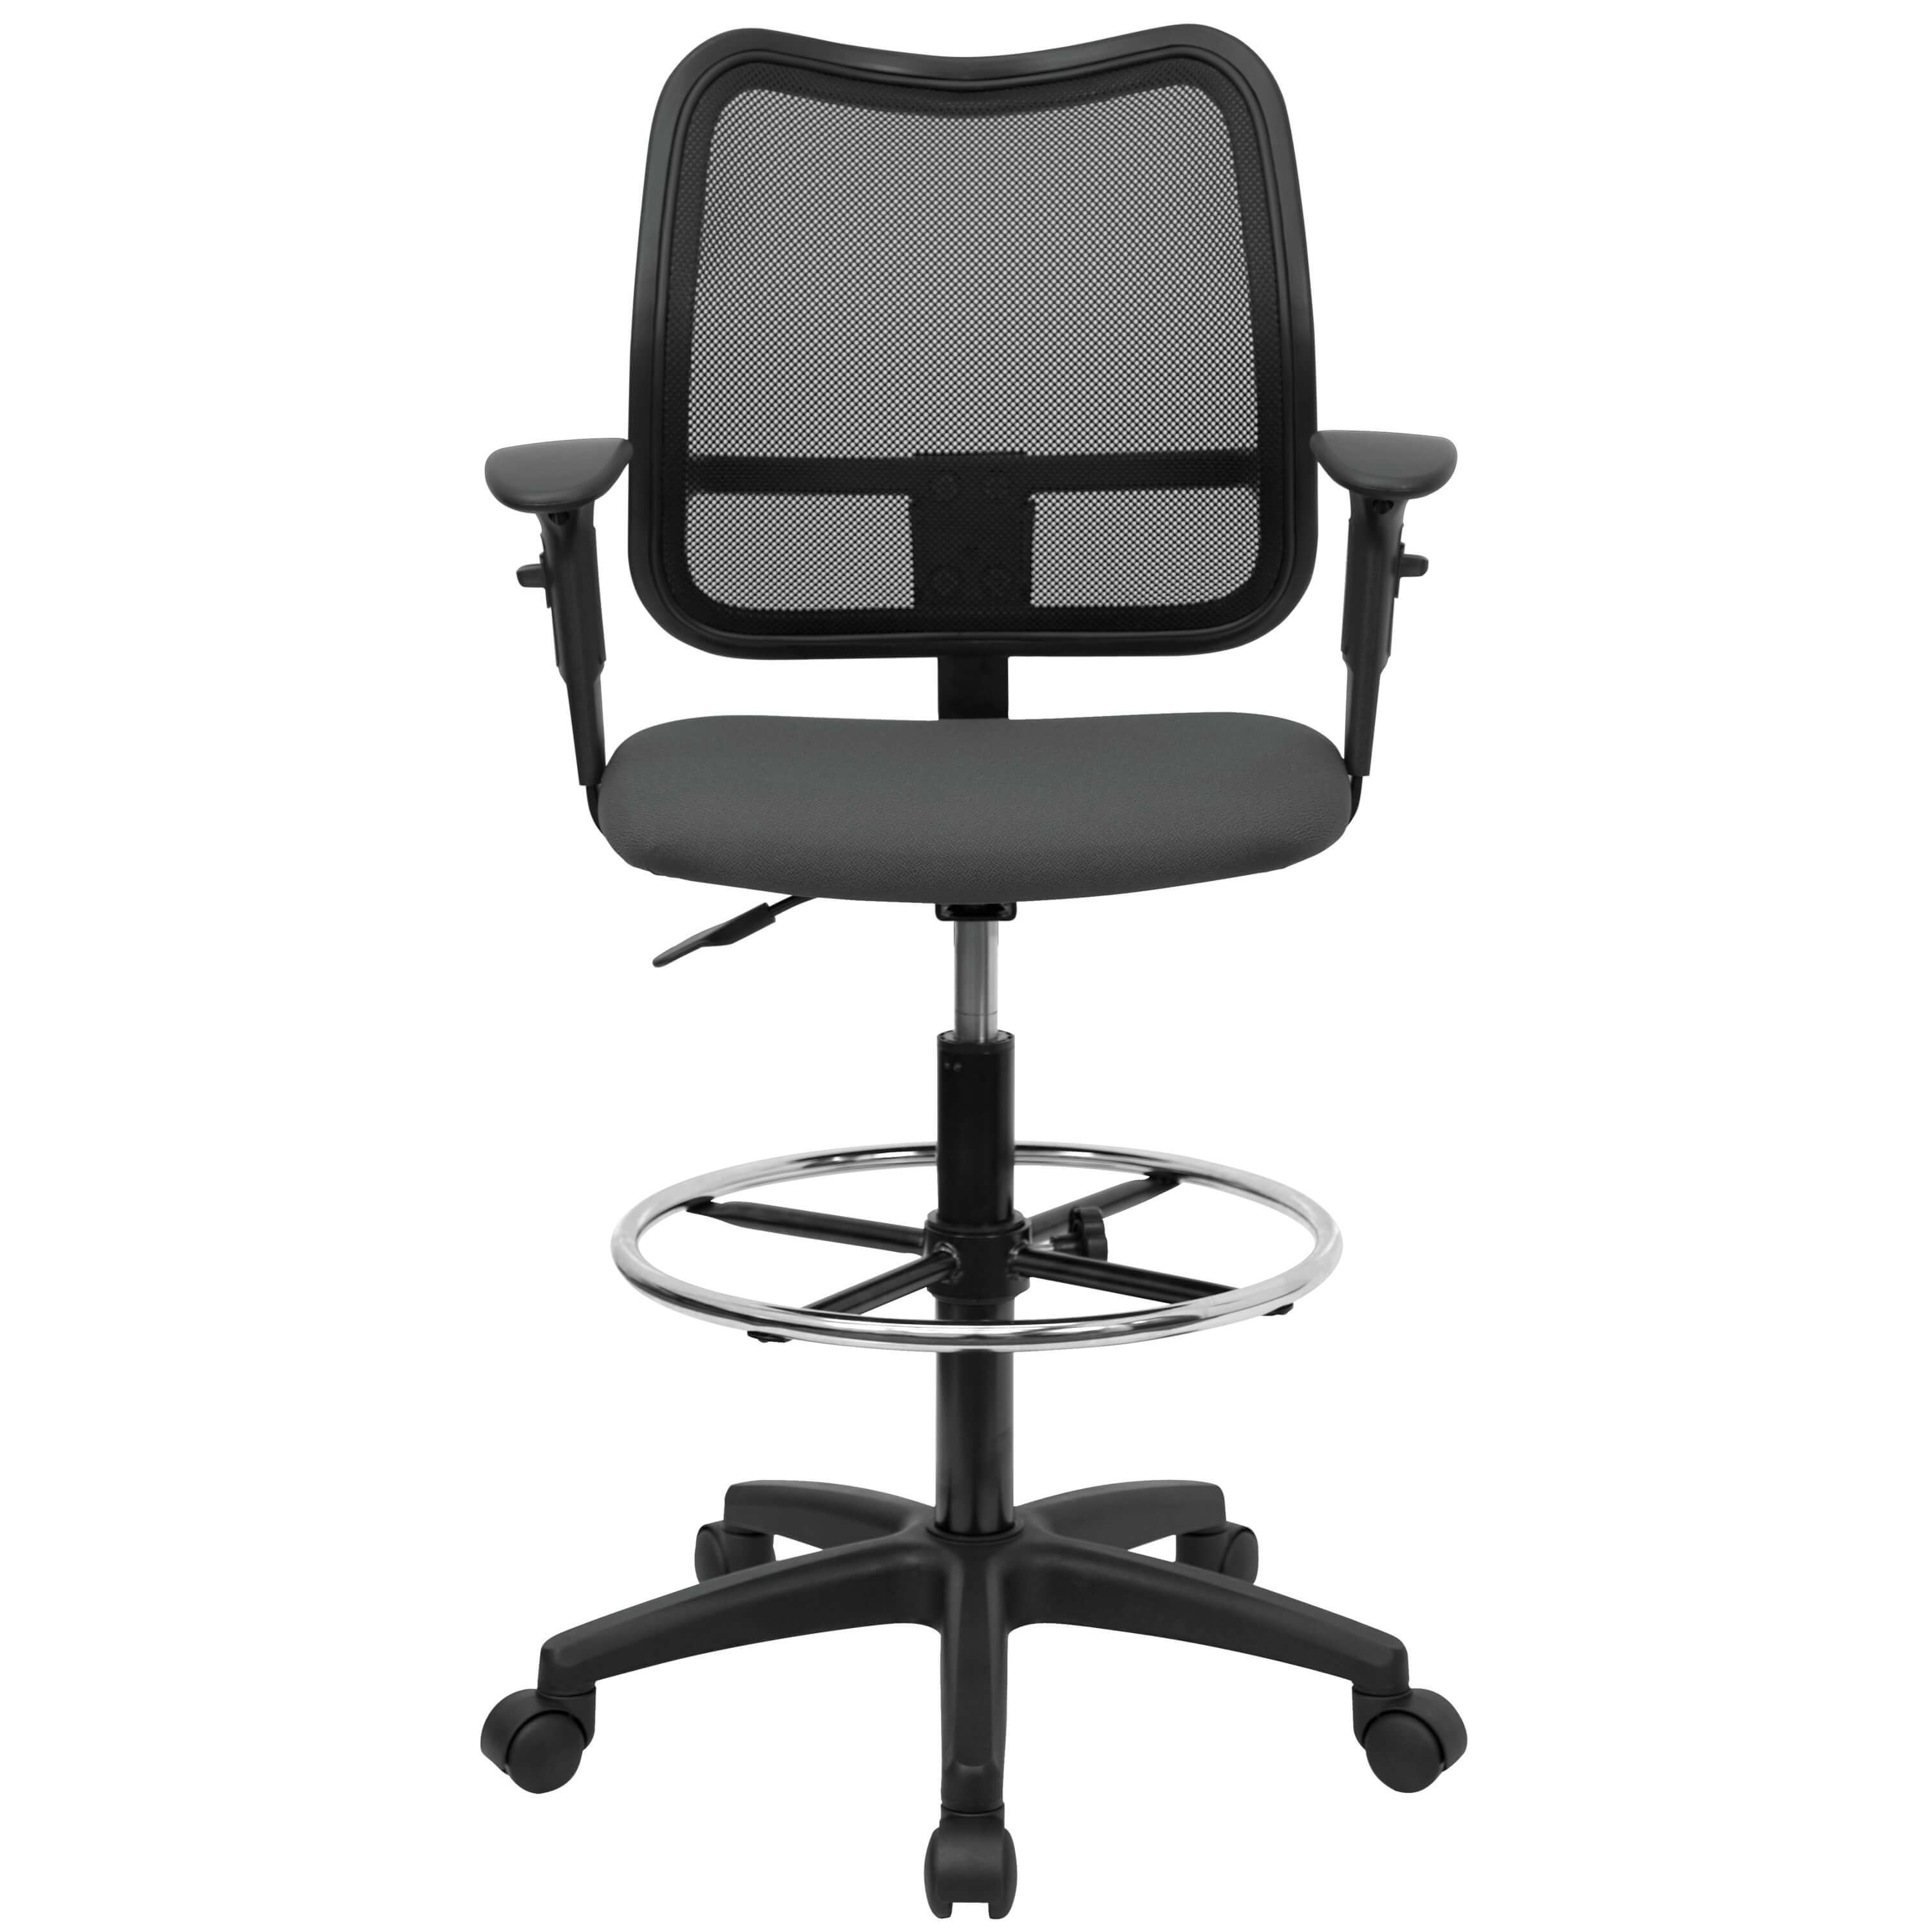 Cool desk chairs CUB WL A277 GY AD GG FLA